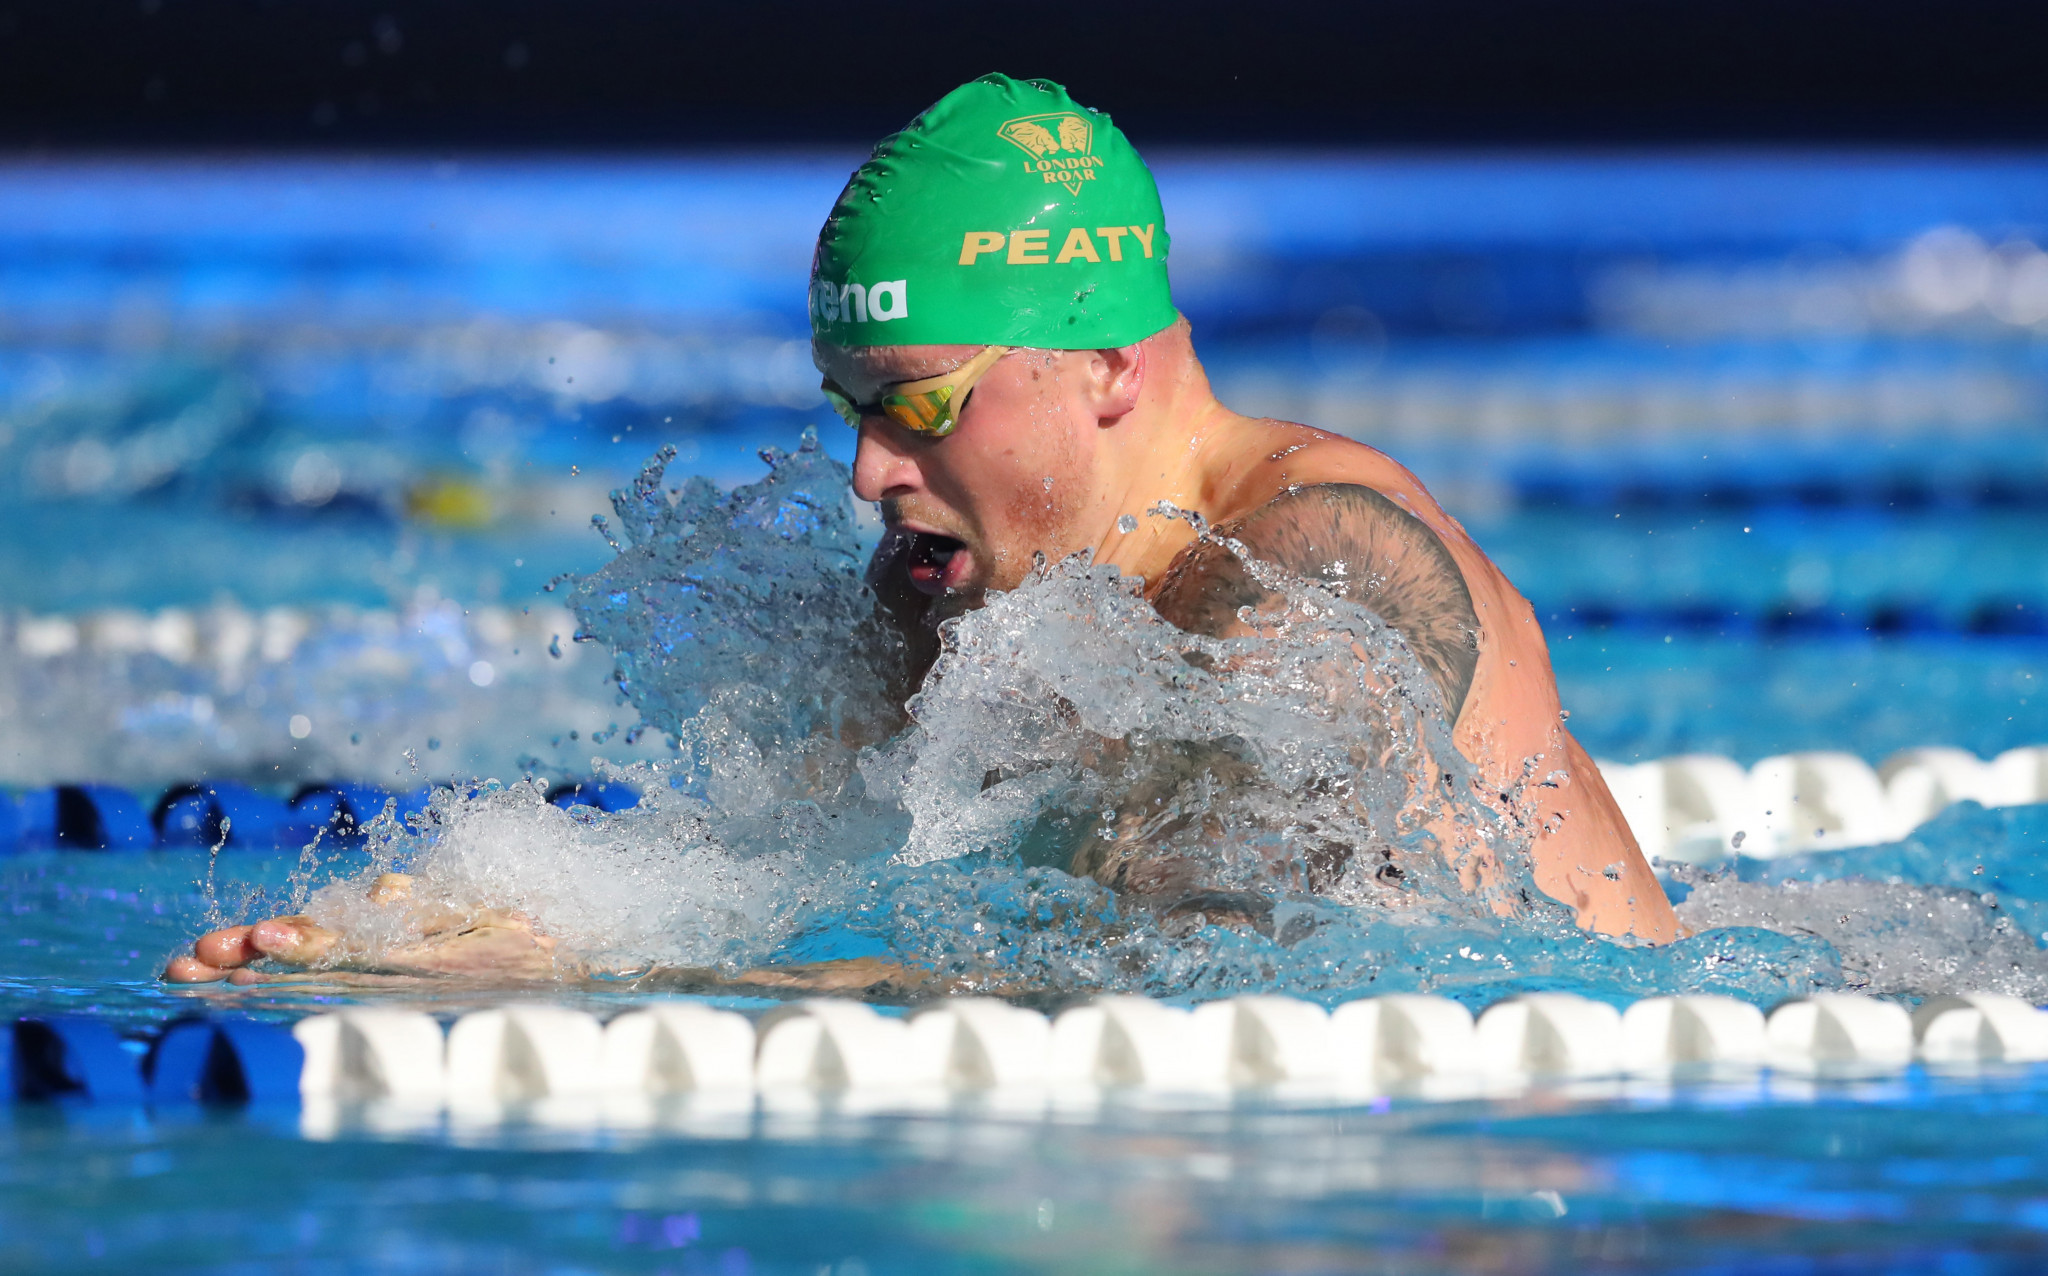 Olympic champion Peaty leads criticism of British Government as sport facilities remain closed